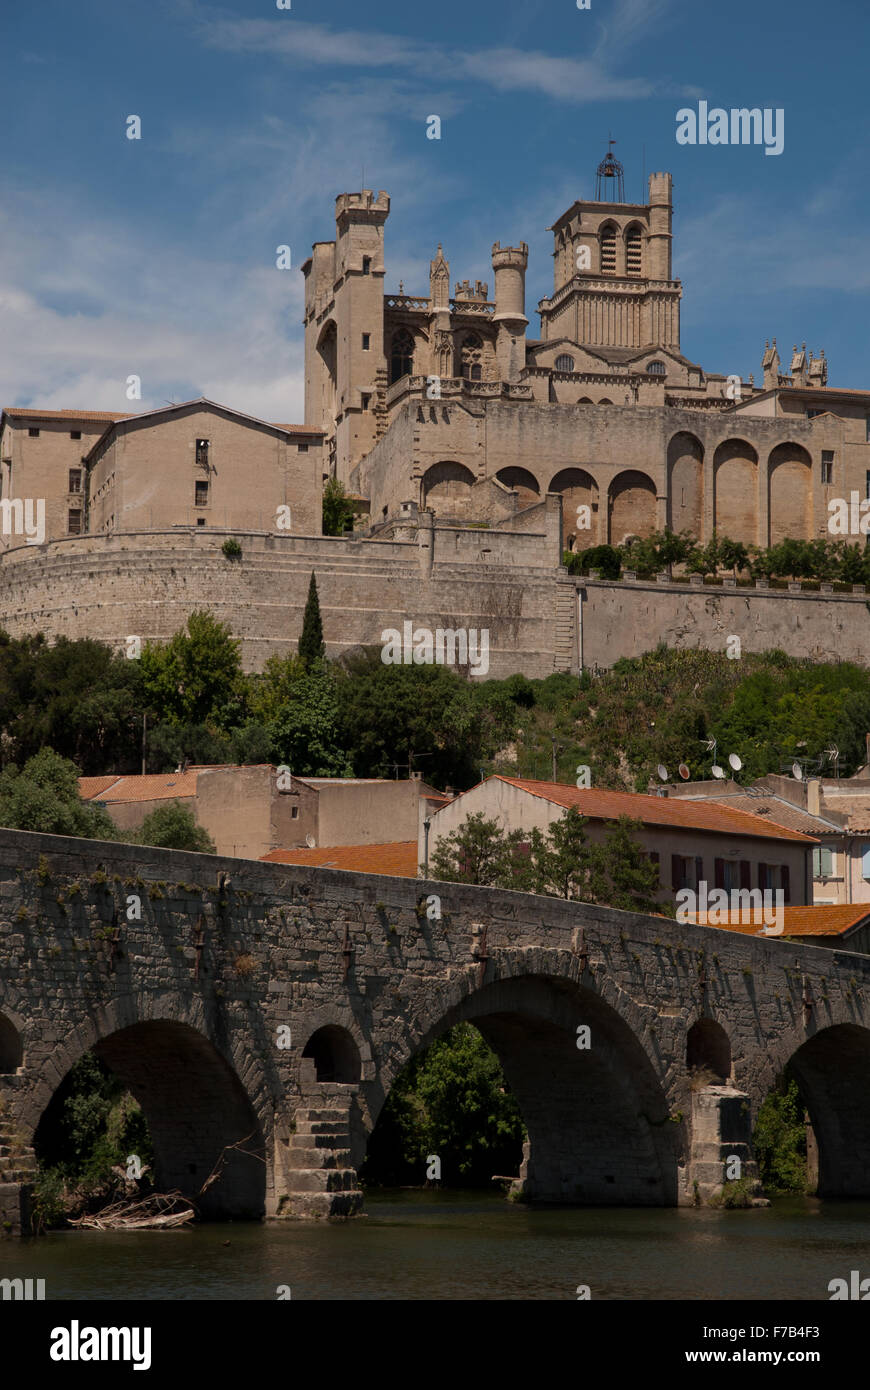 Beziers, Languedoc, France - Stock Image